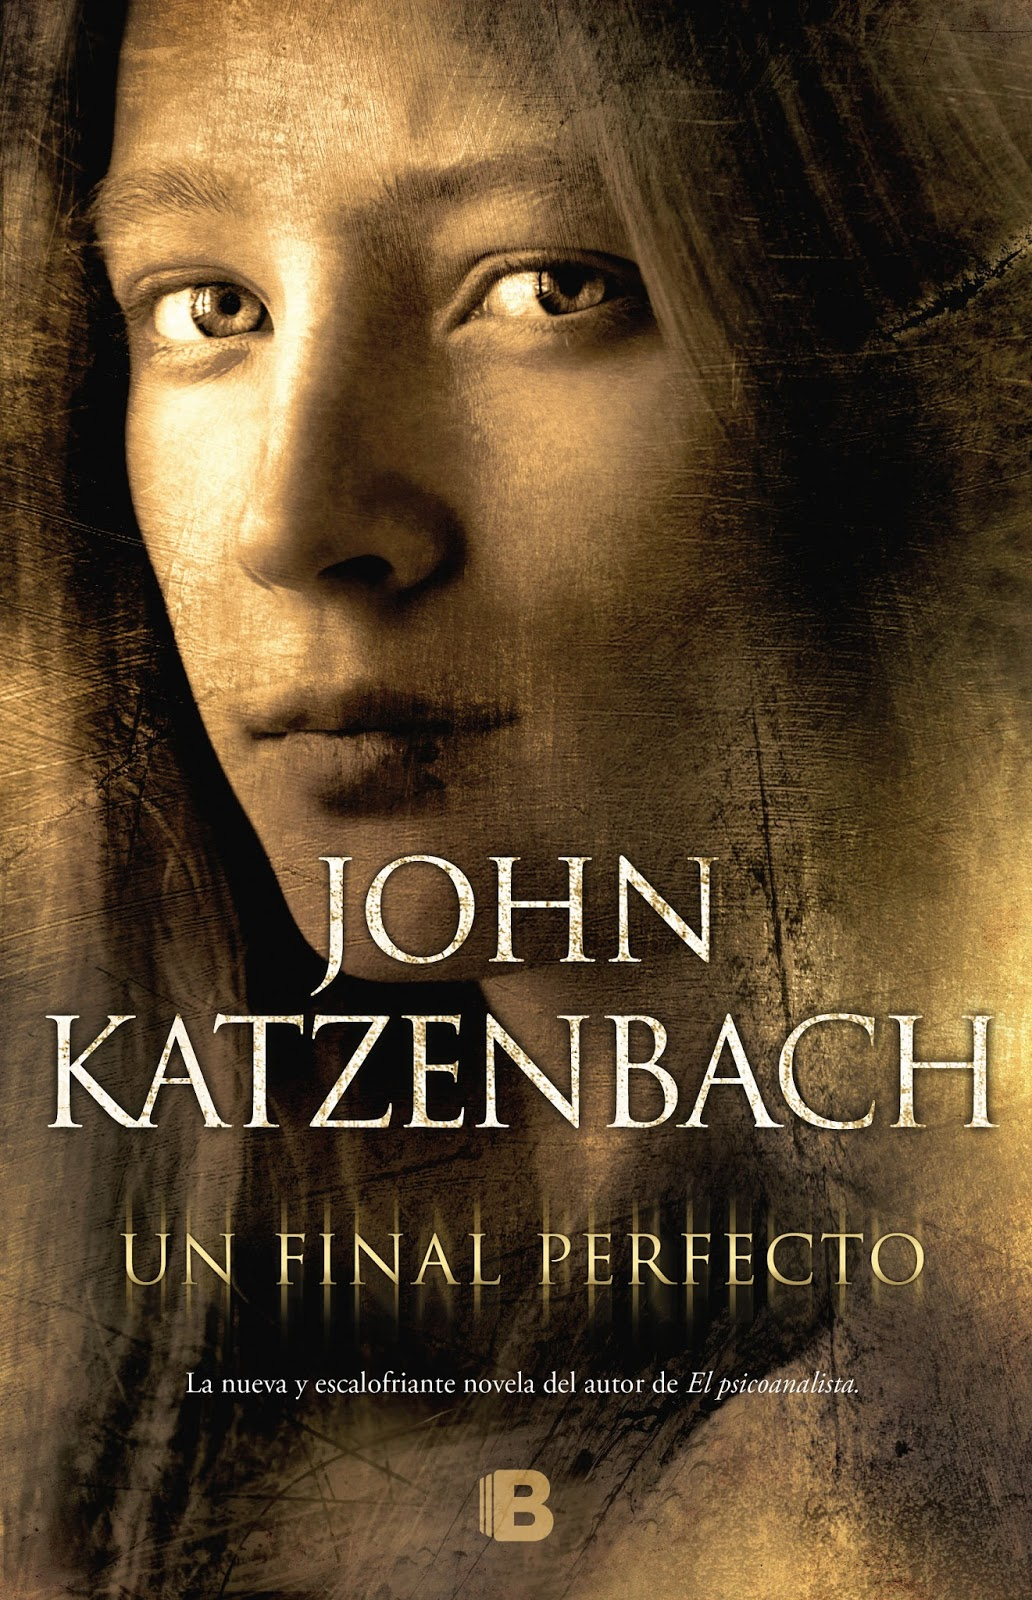 La Pablopedia: Final perfecto- Jhon Katzenbach